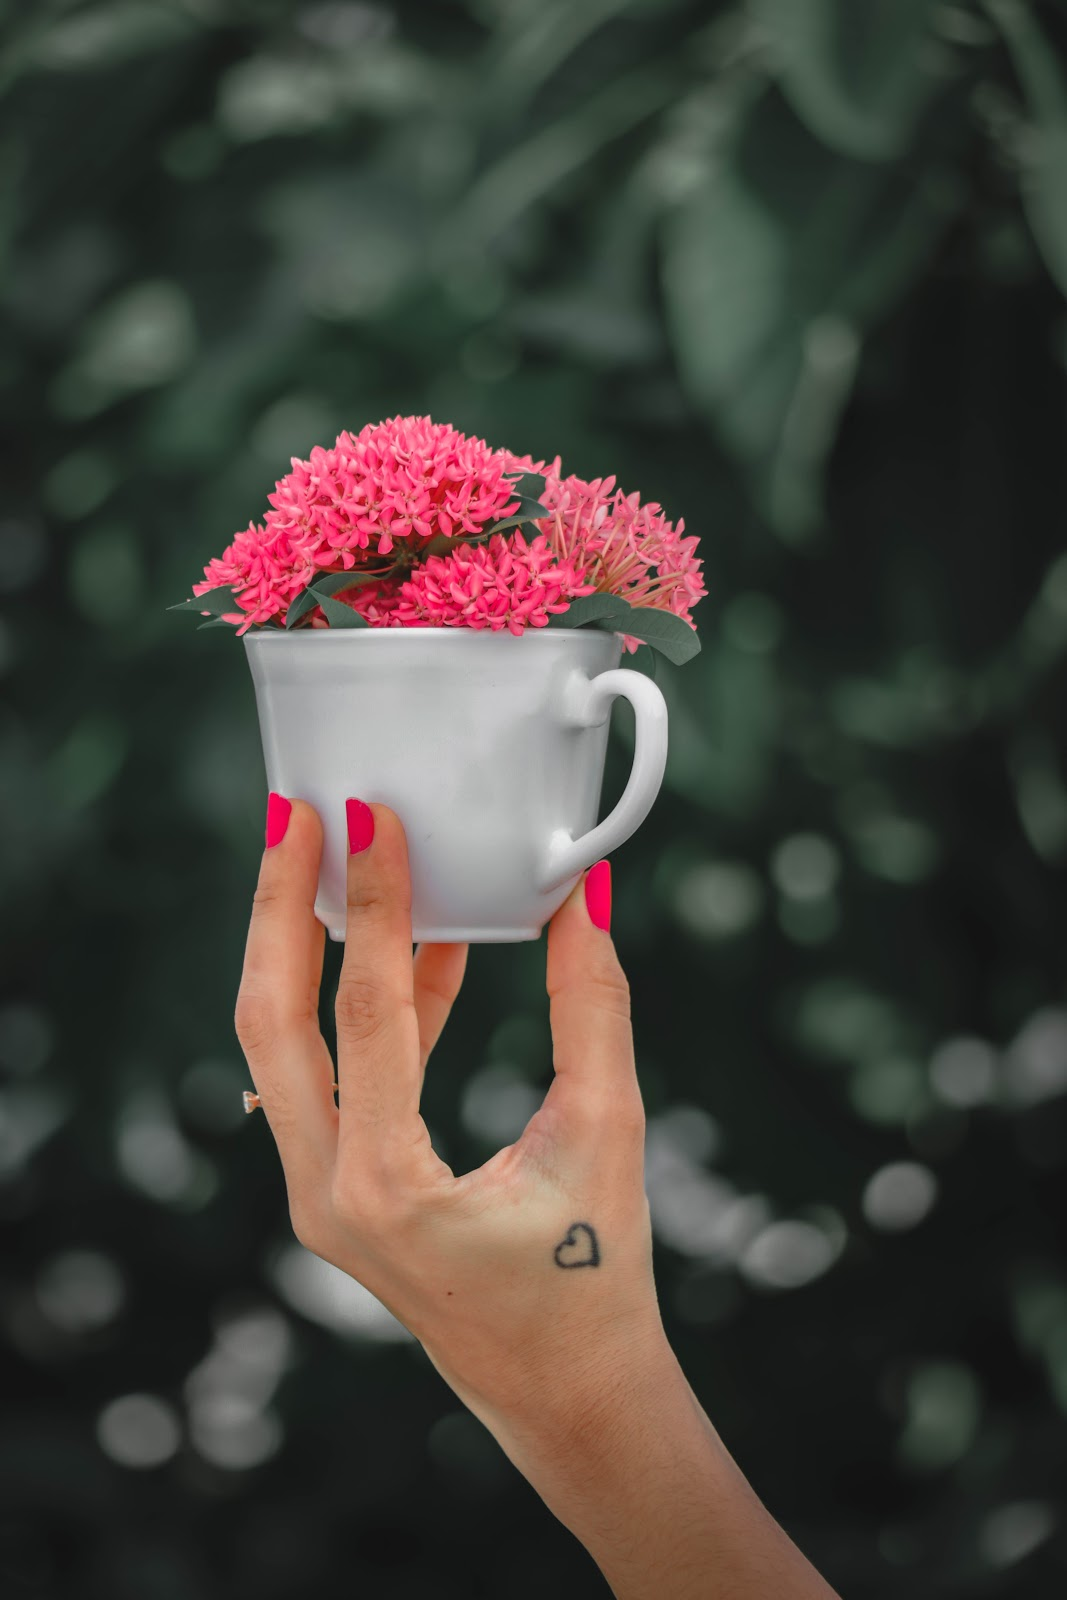 cups of pink flowers